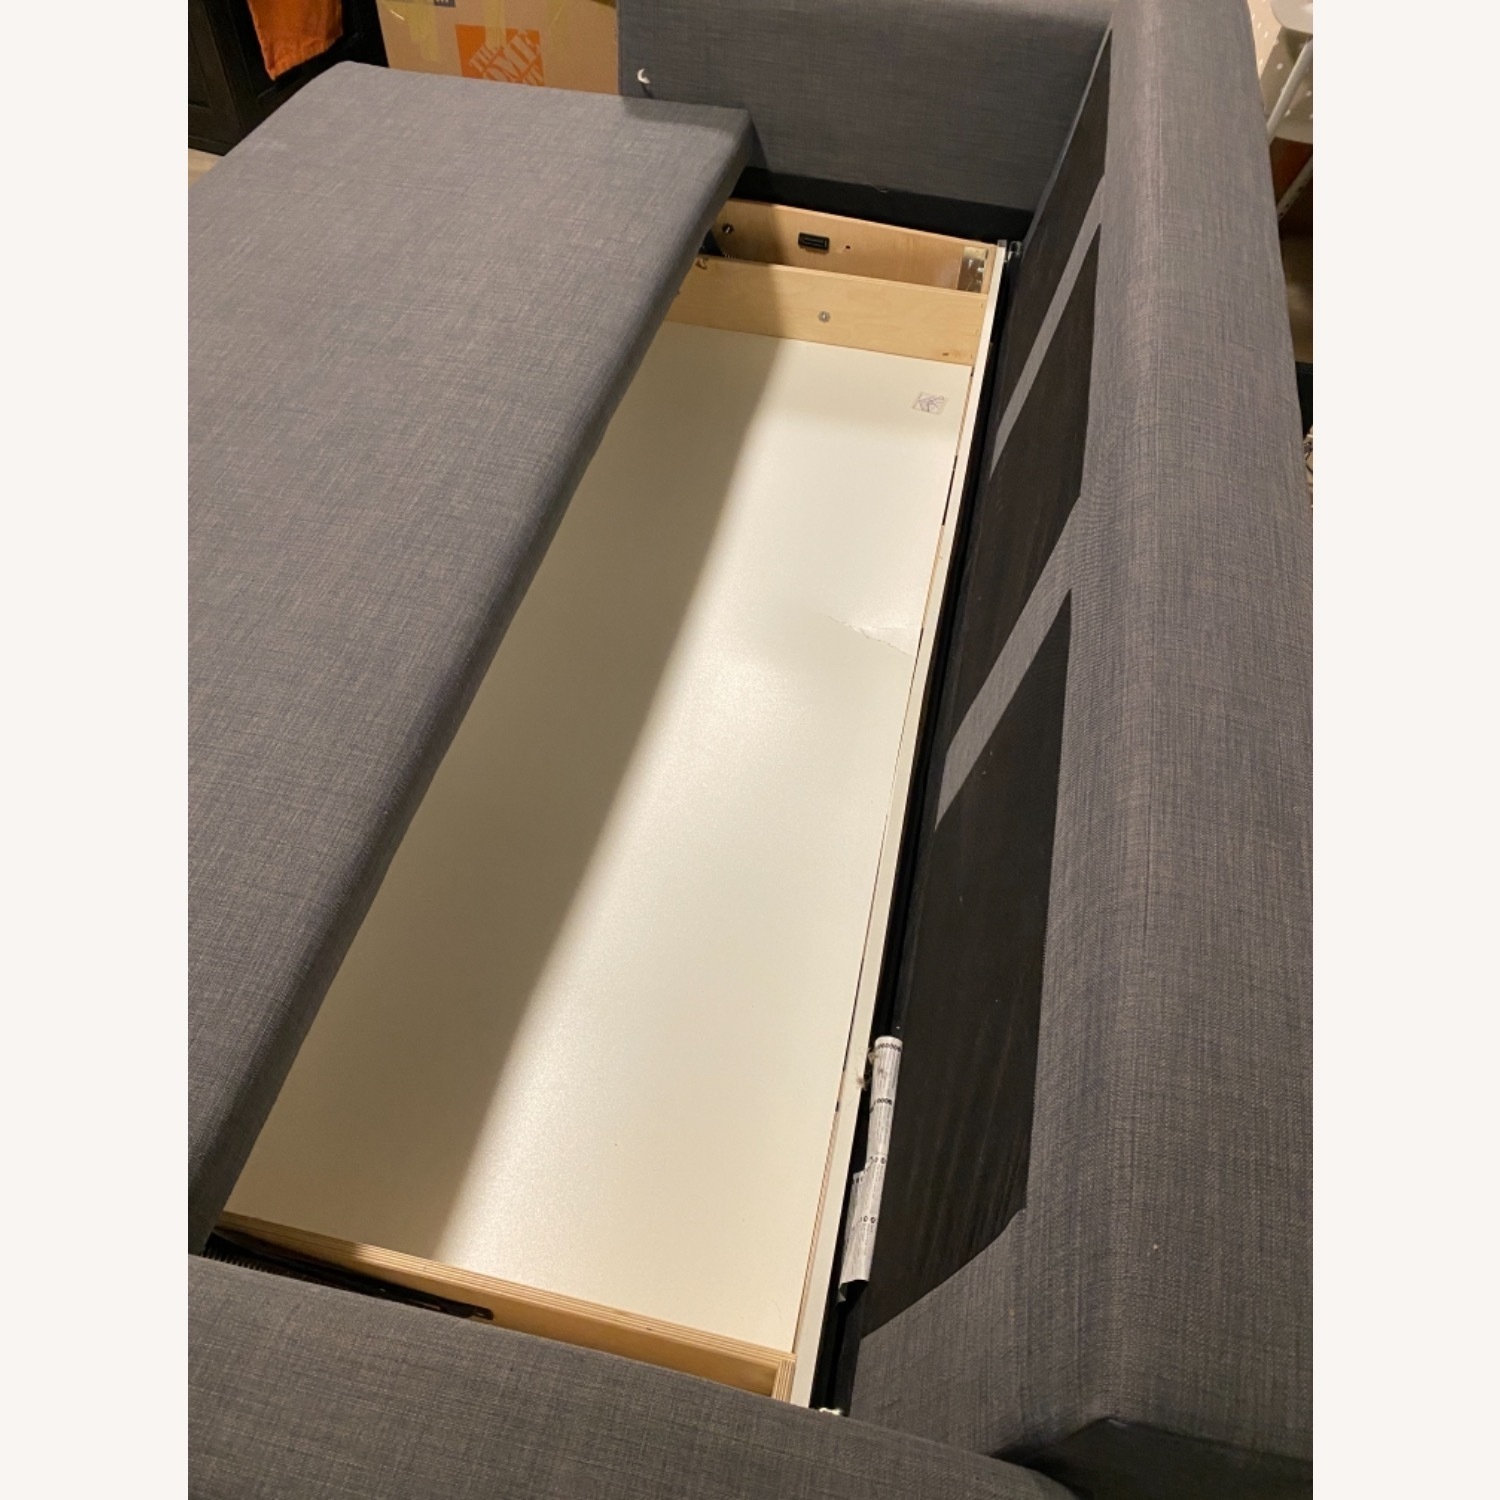 IKEA Dark Grey Sofa Bed - image-7